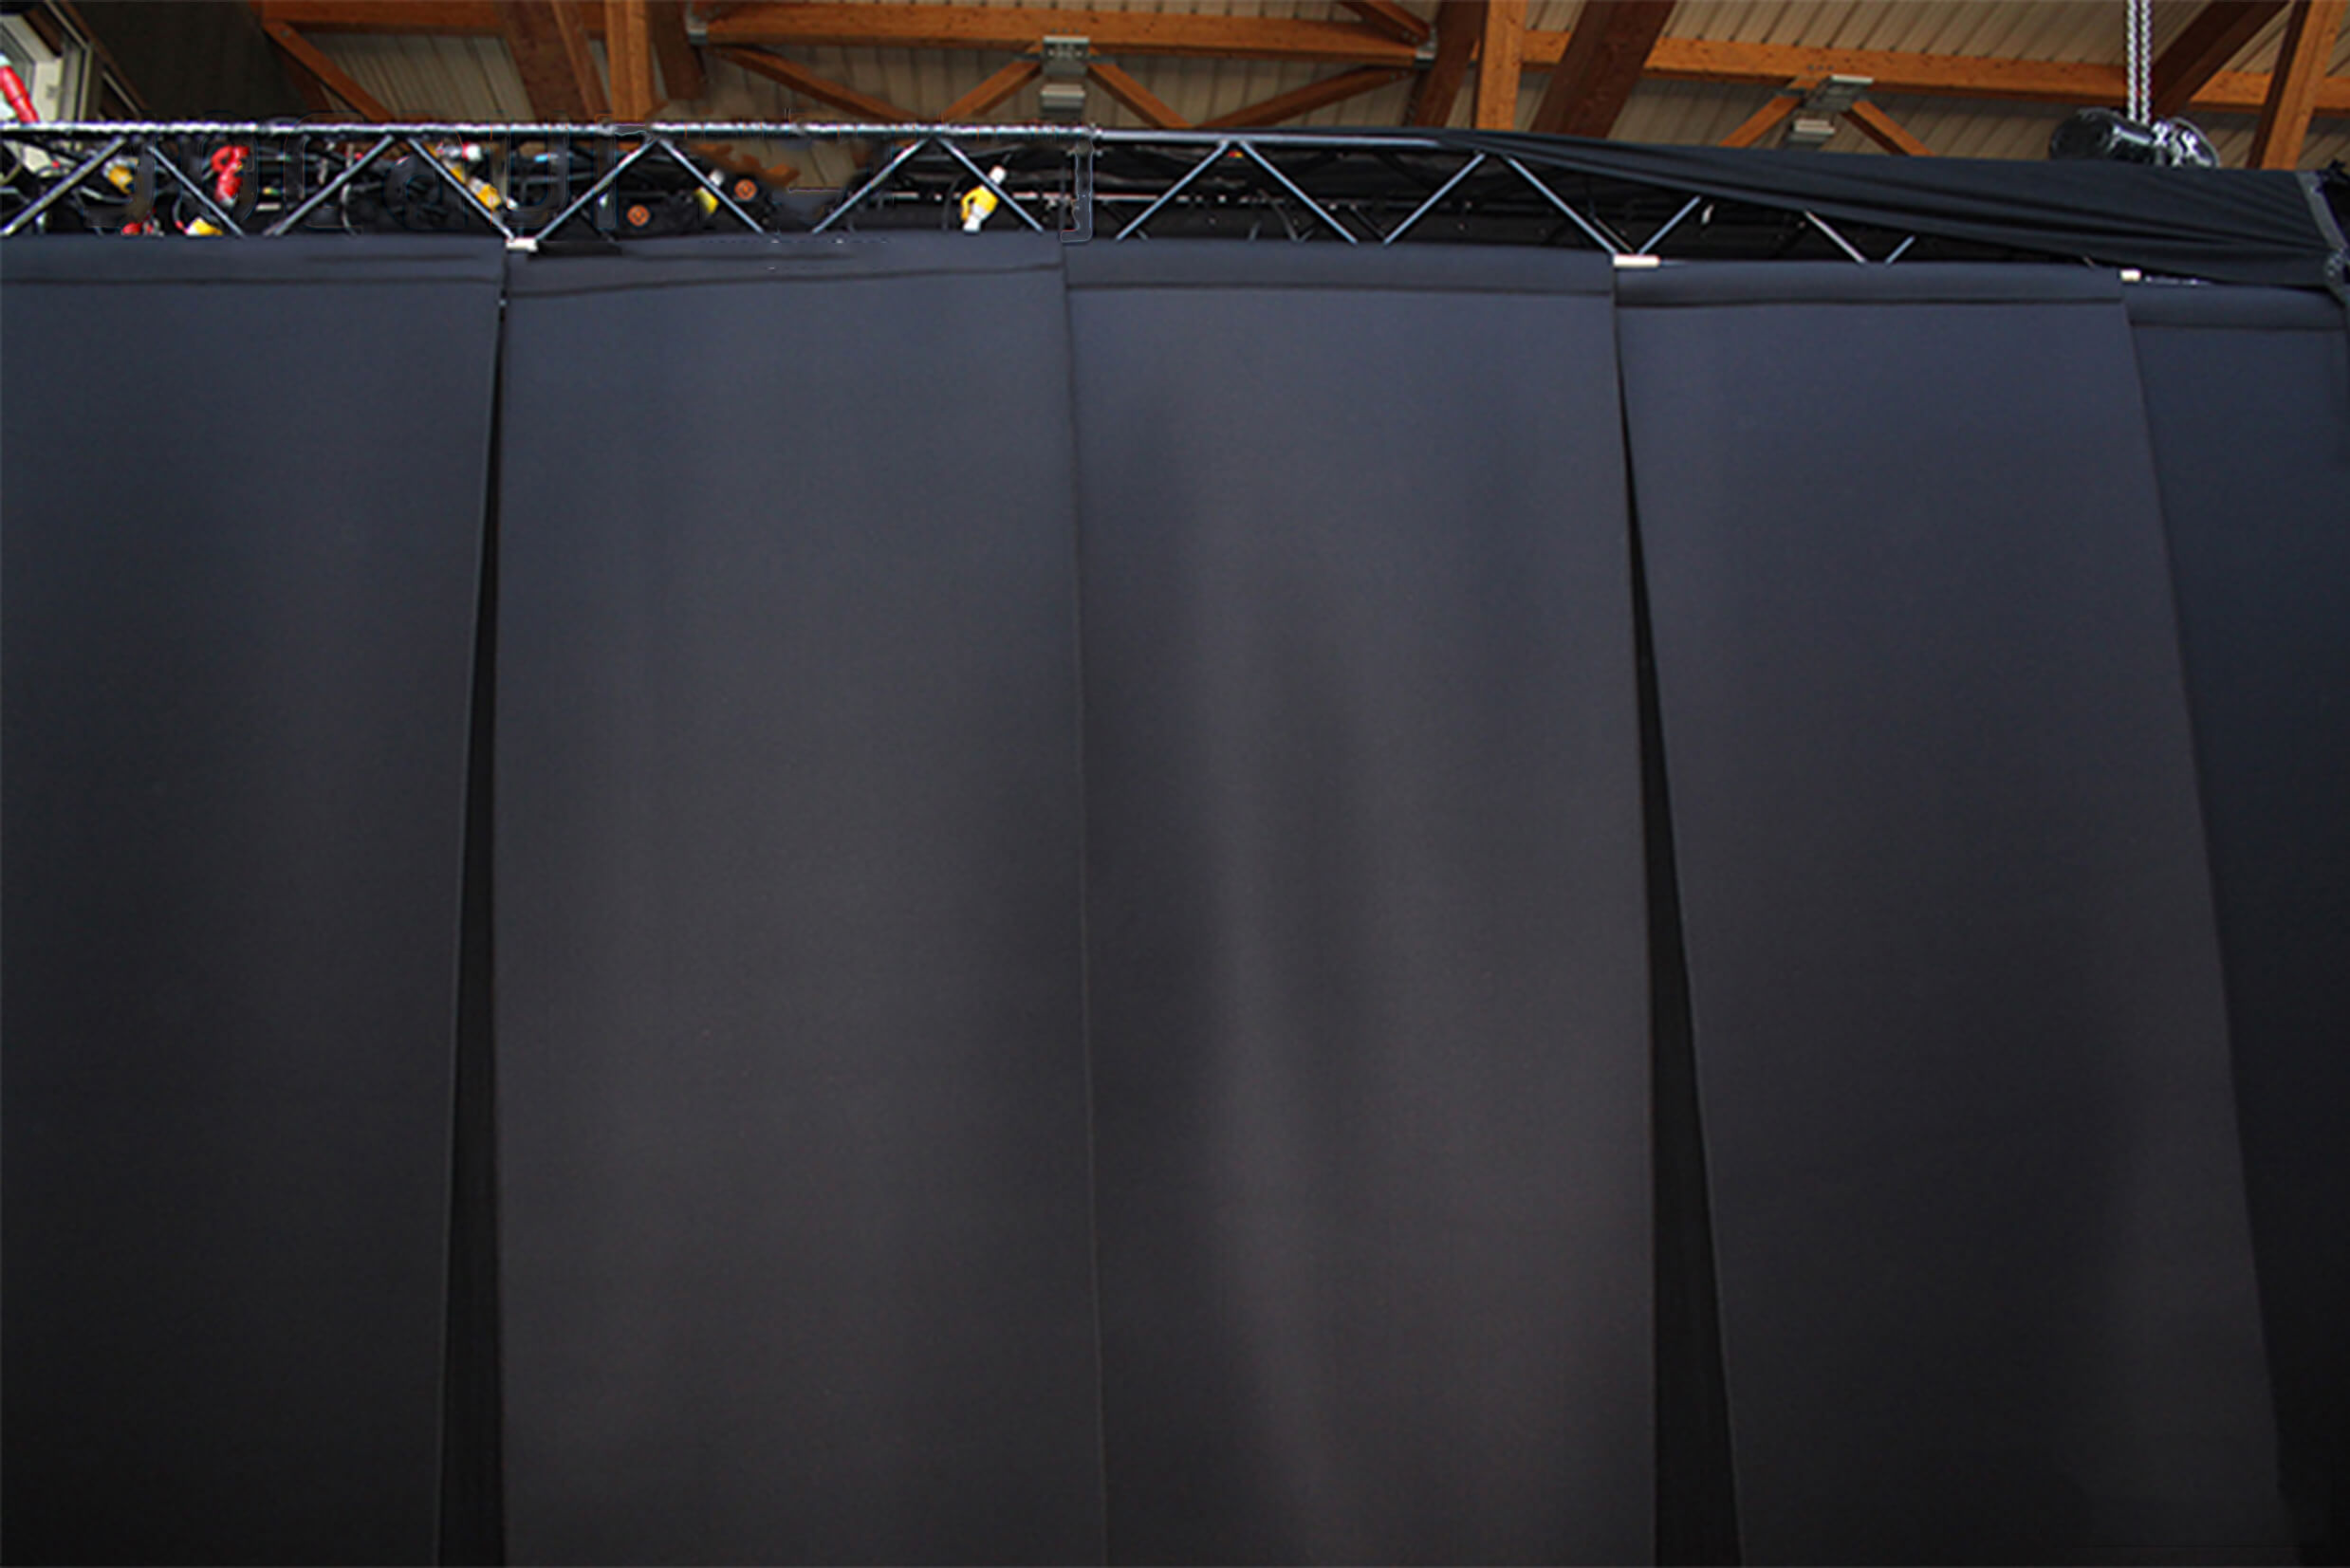 basmel acoustic curtains installed on performance stage